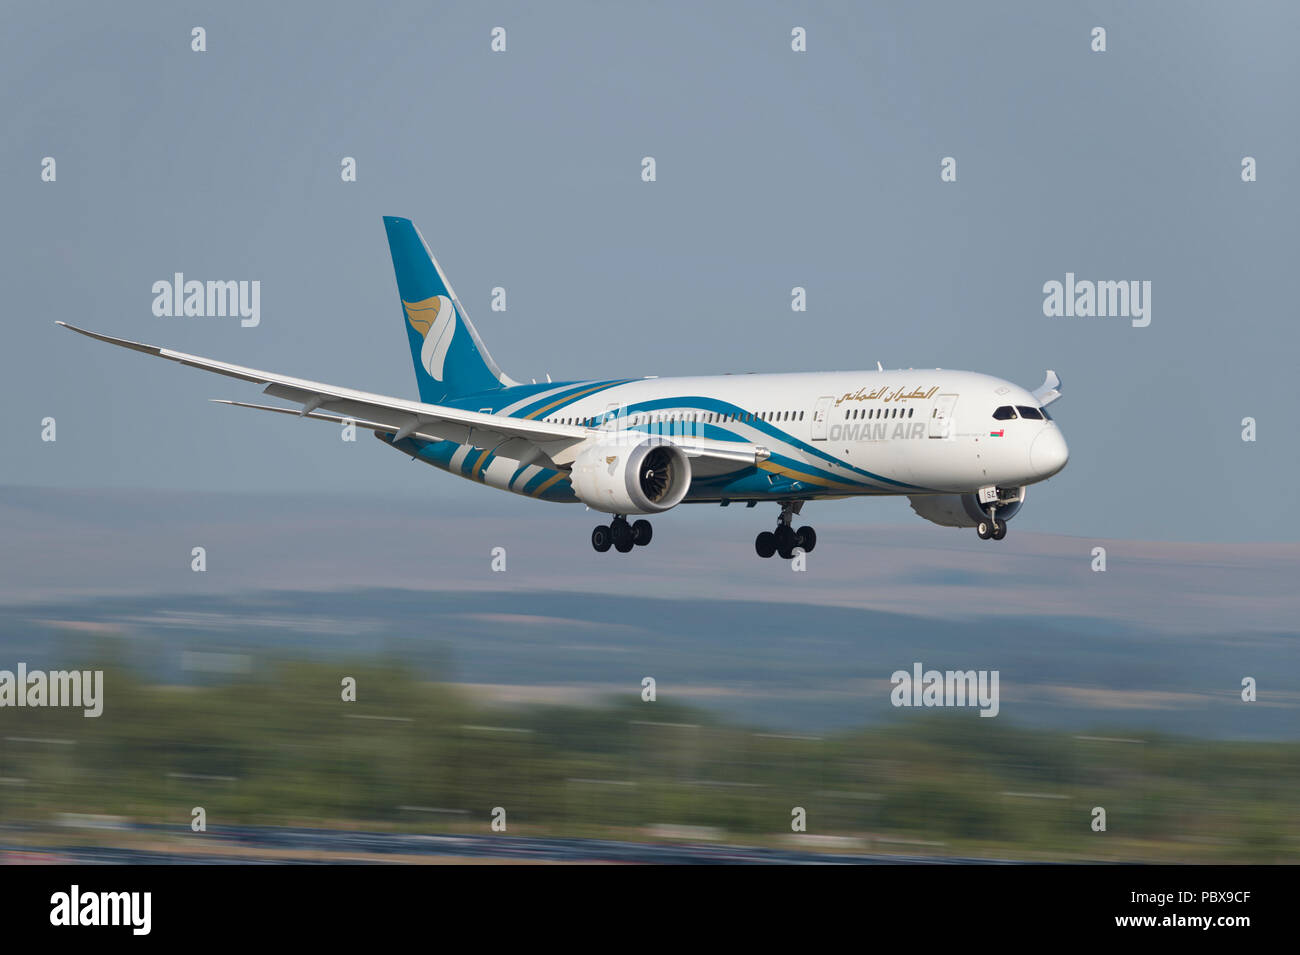 An Oman Air Boeing 787-8 comes in to land at Manchester Airport, UK. - Stock Image